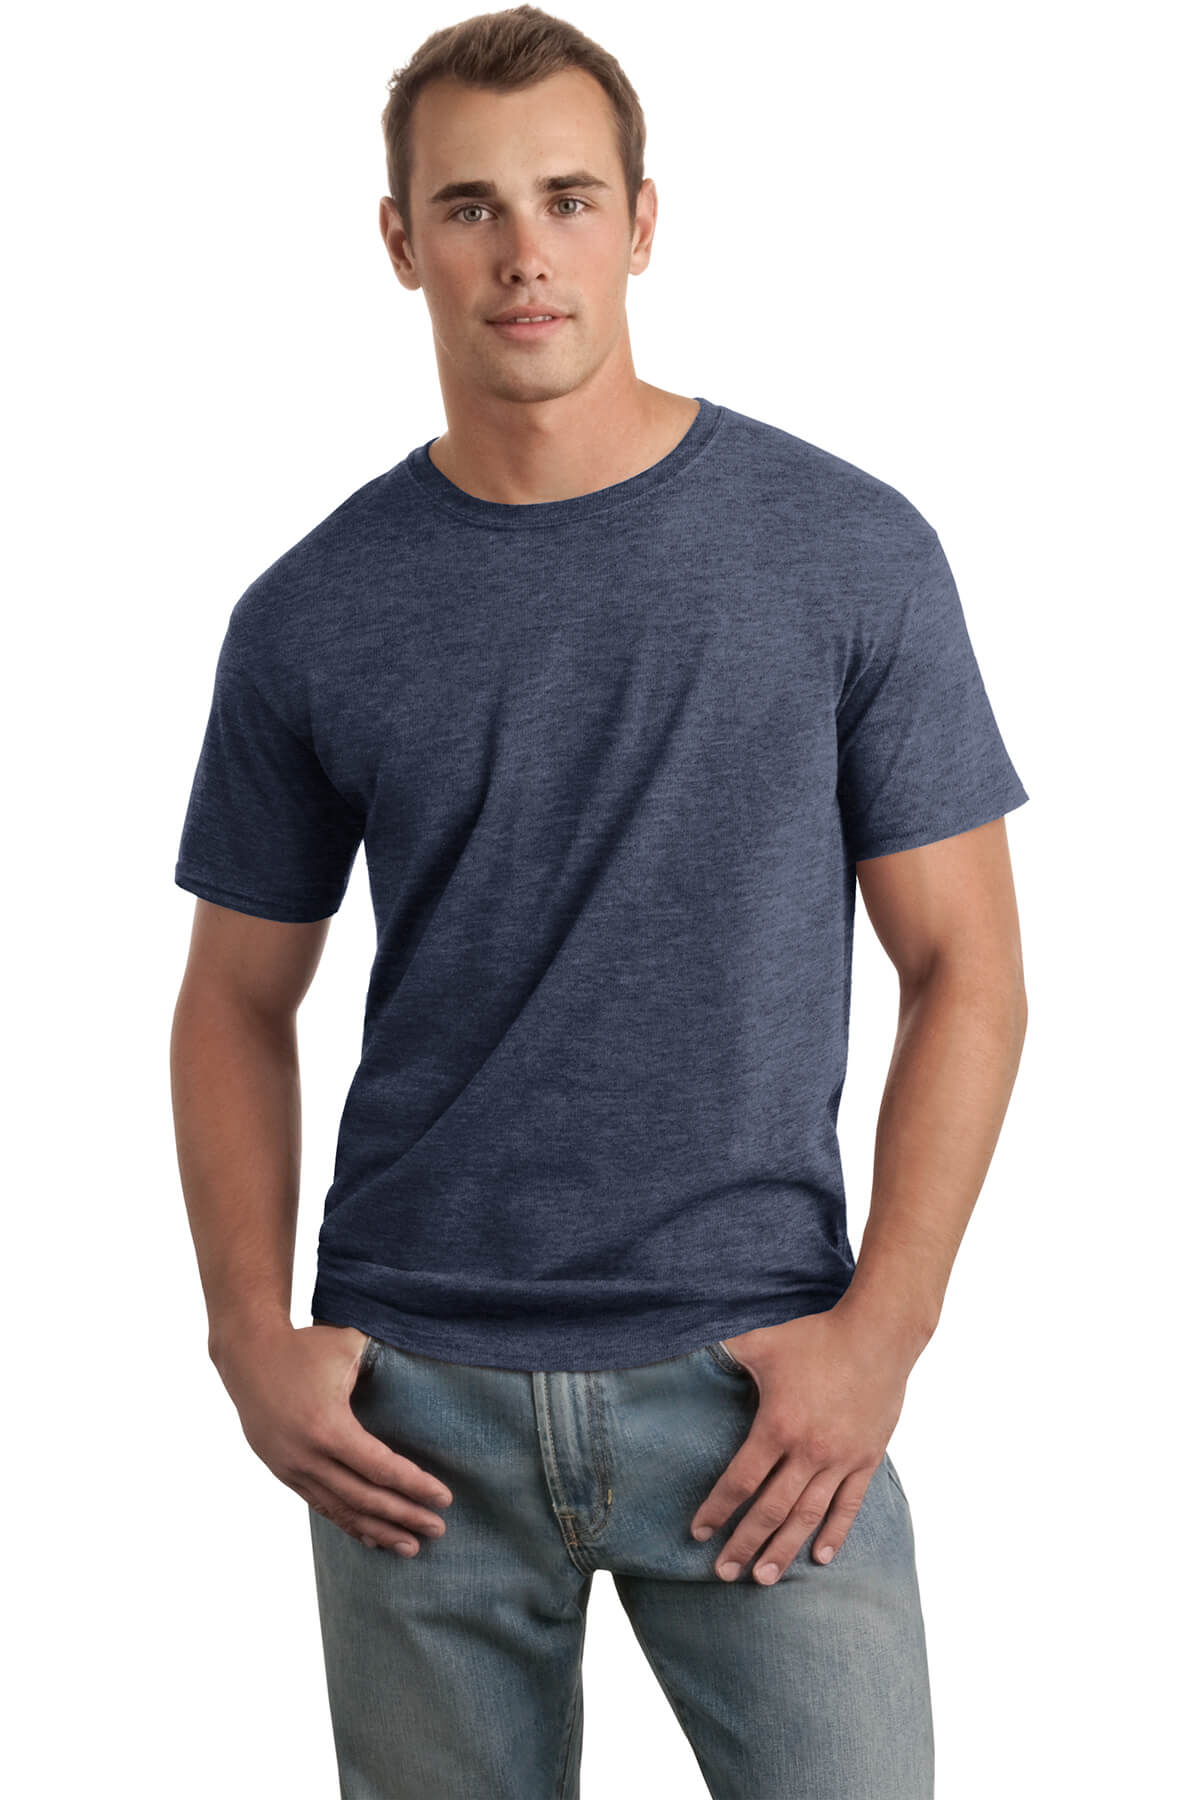 Heather Navy T-Shirt Model Front